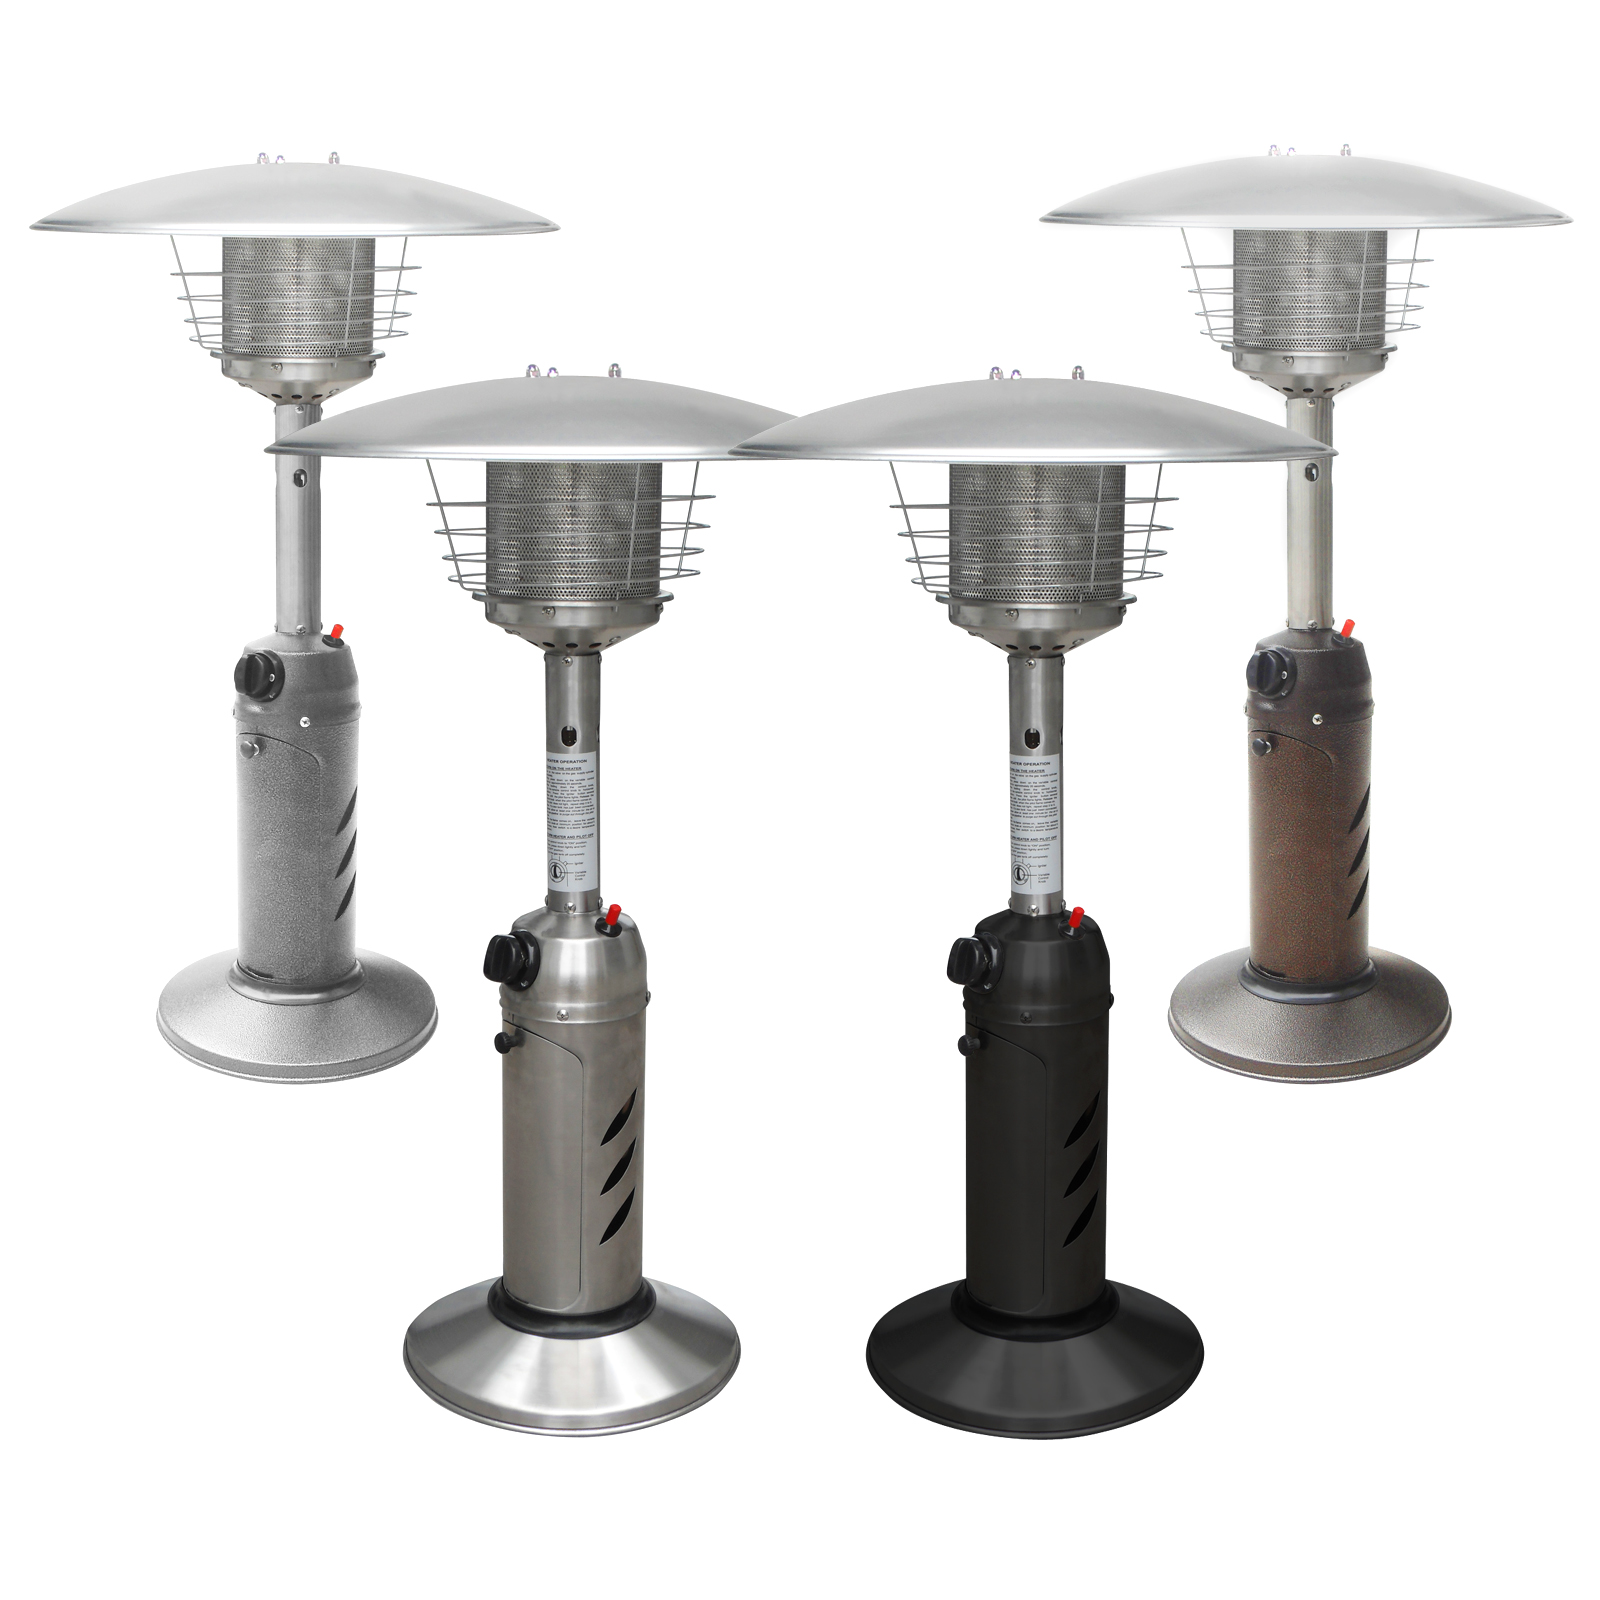 Tabletop Outdoor Patio Heater By ThermoTiki